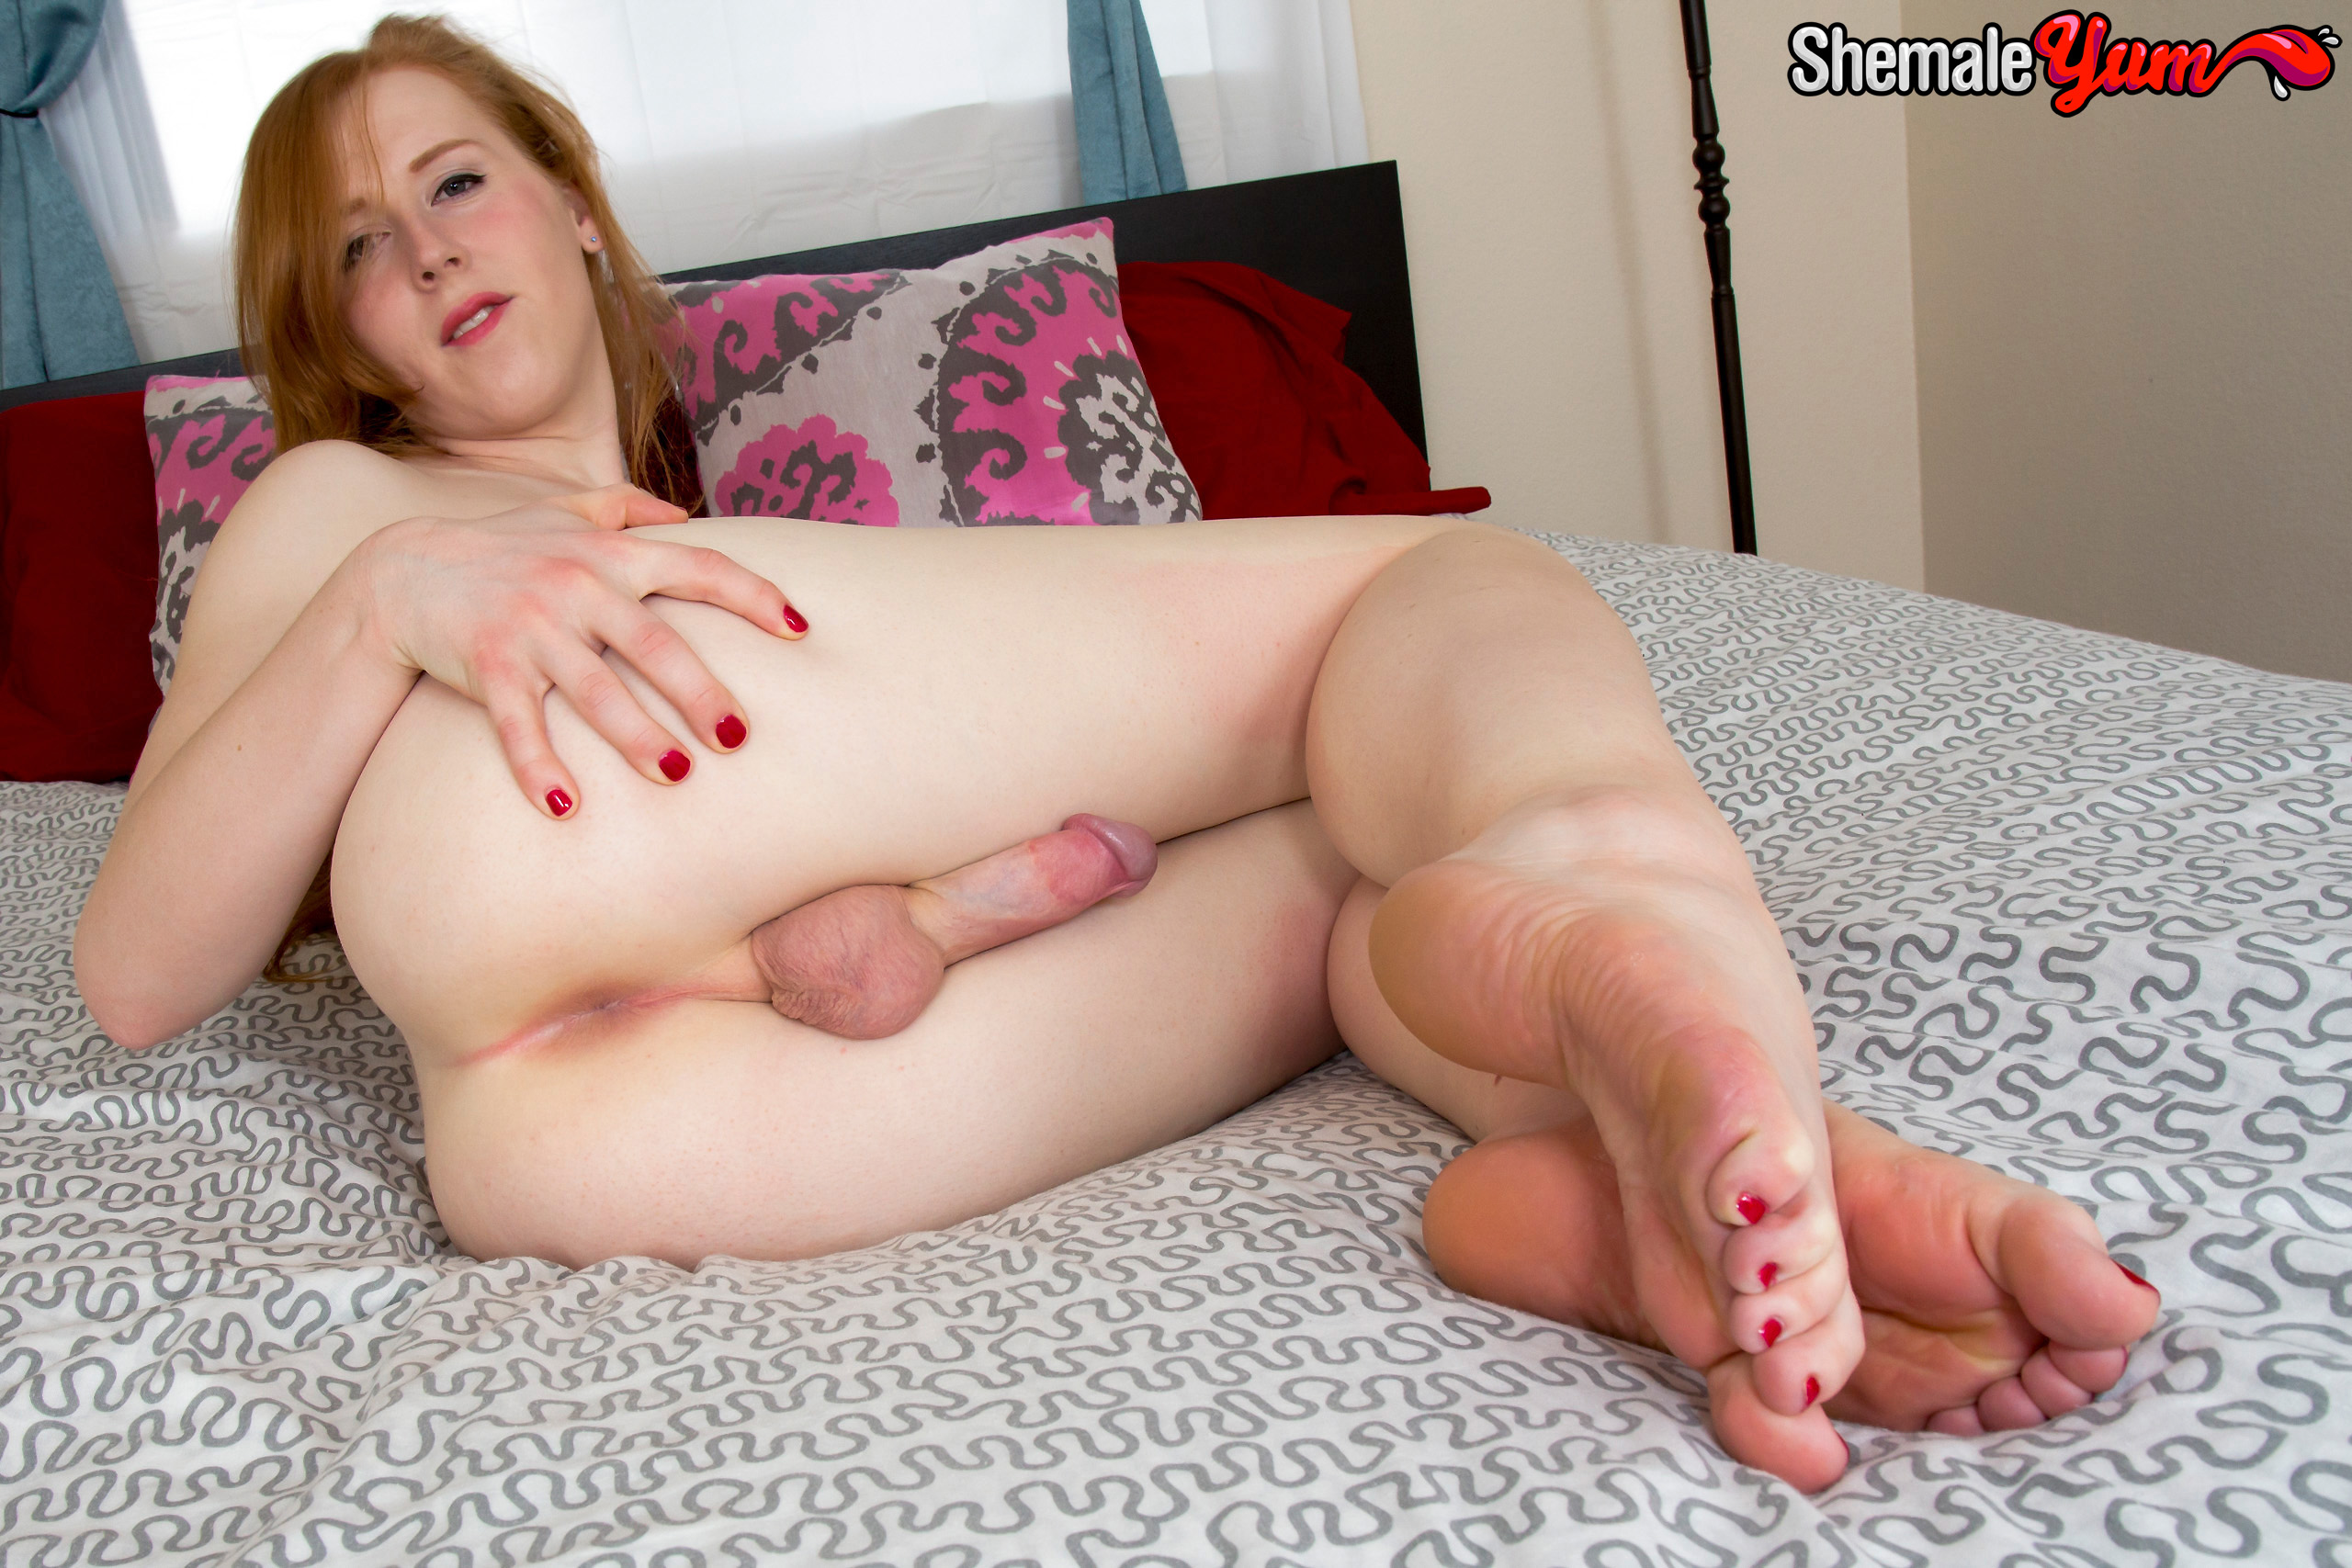 Get Russian Tgirl Girl Xxx For Free